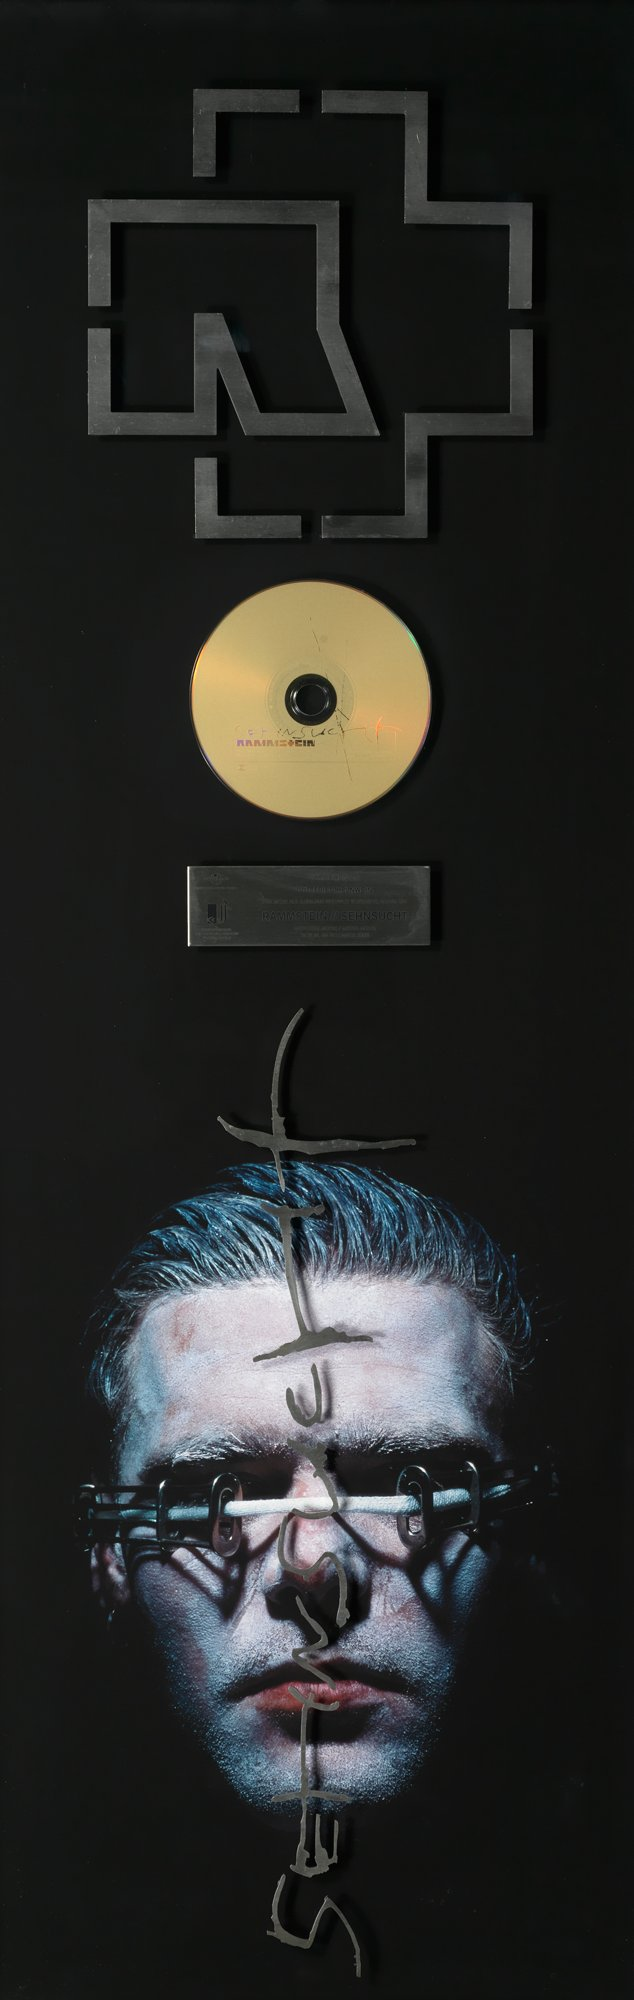 Platinum for Rammstein Helnwein-cover artwork